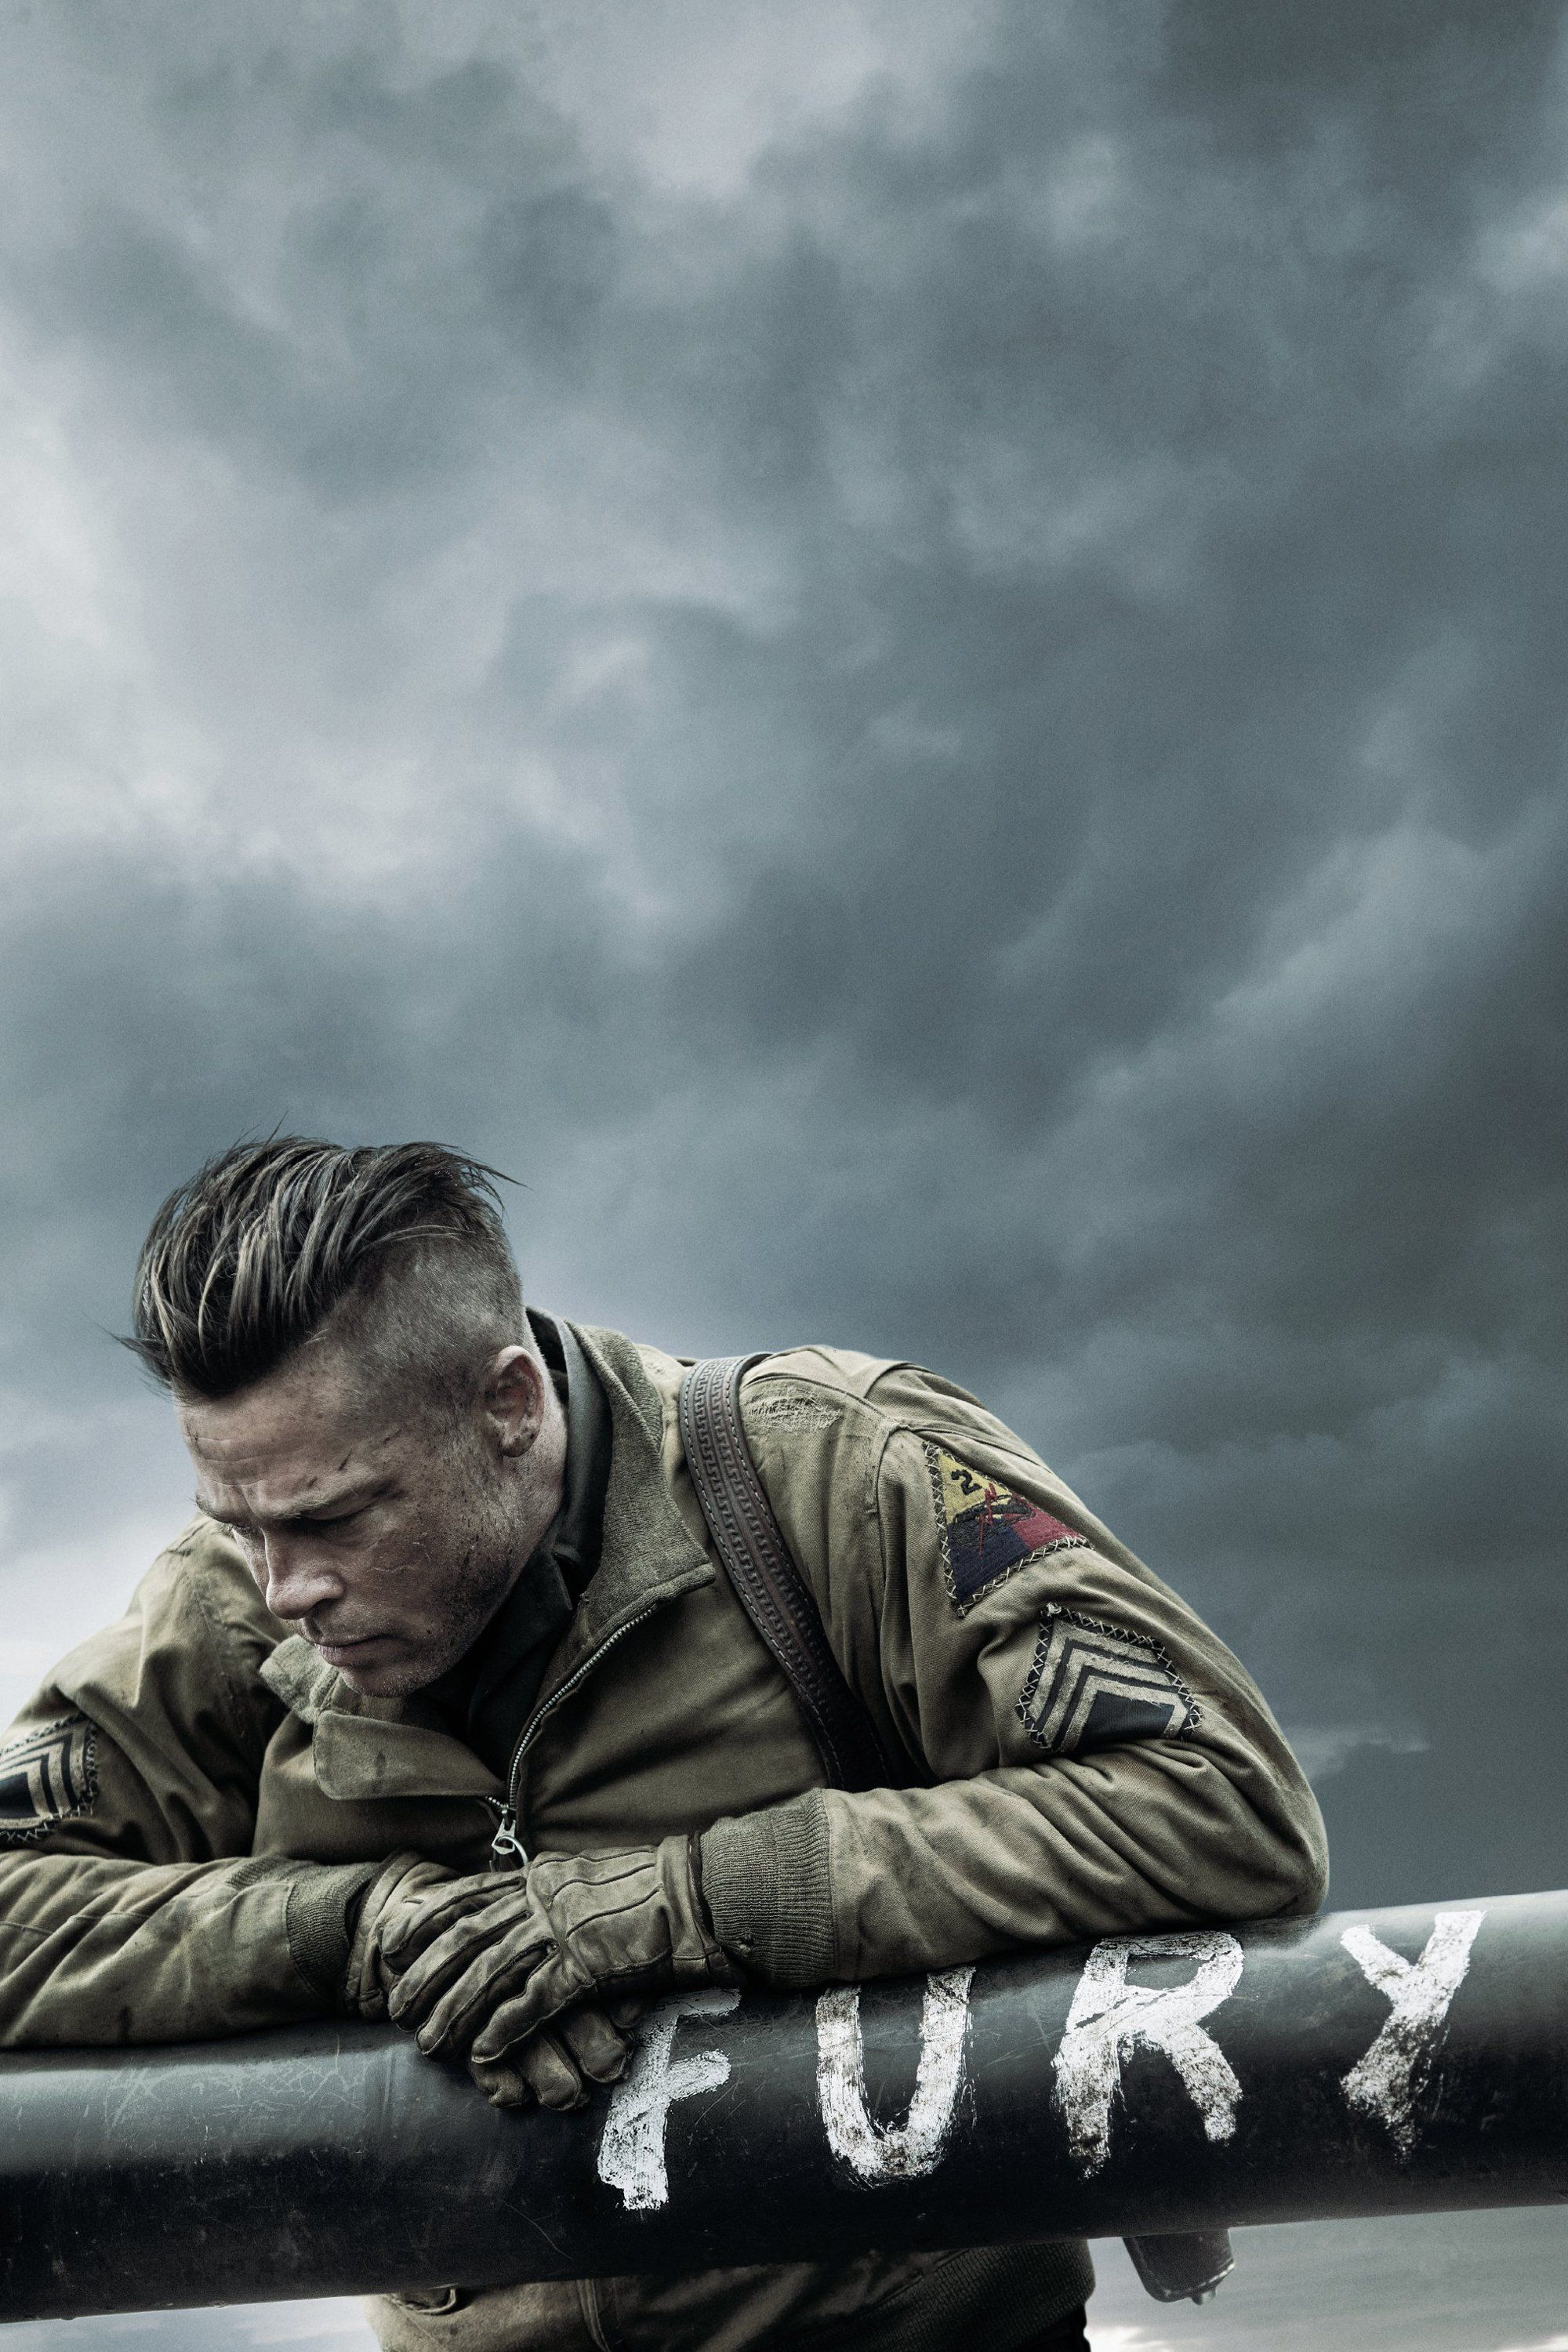 watch movie online fury free download full hd quality watch movies